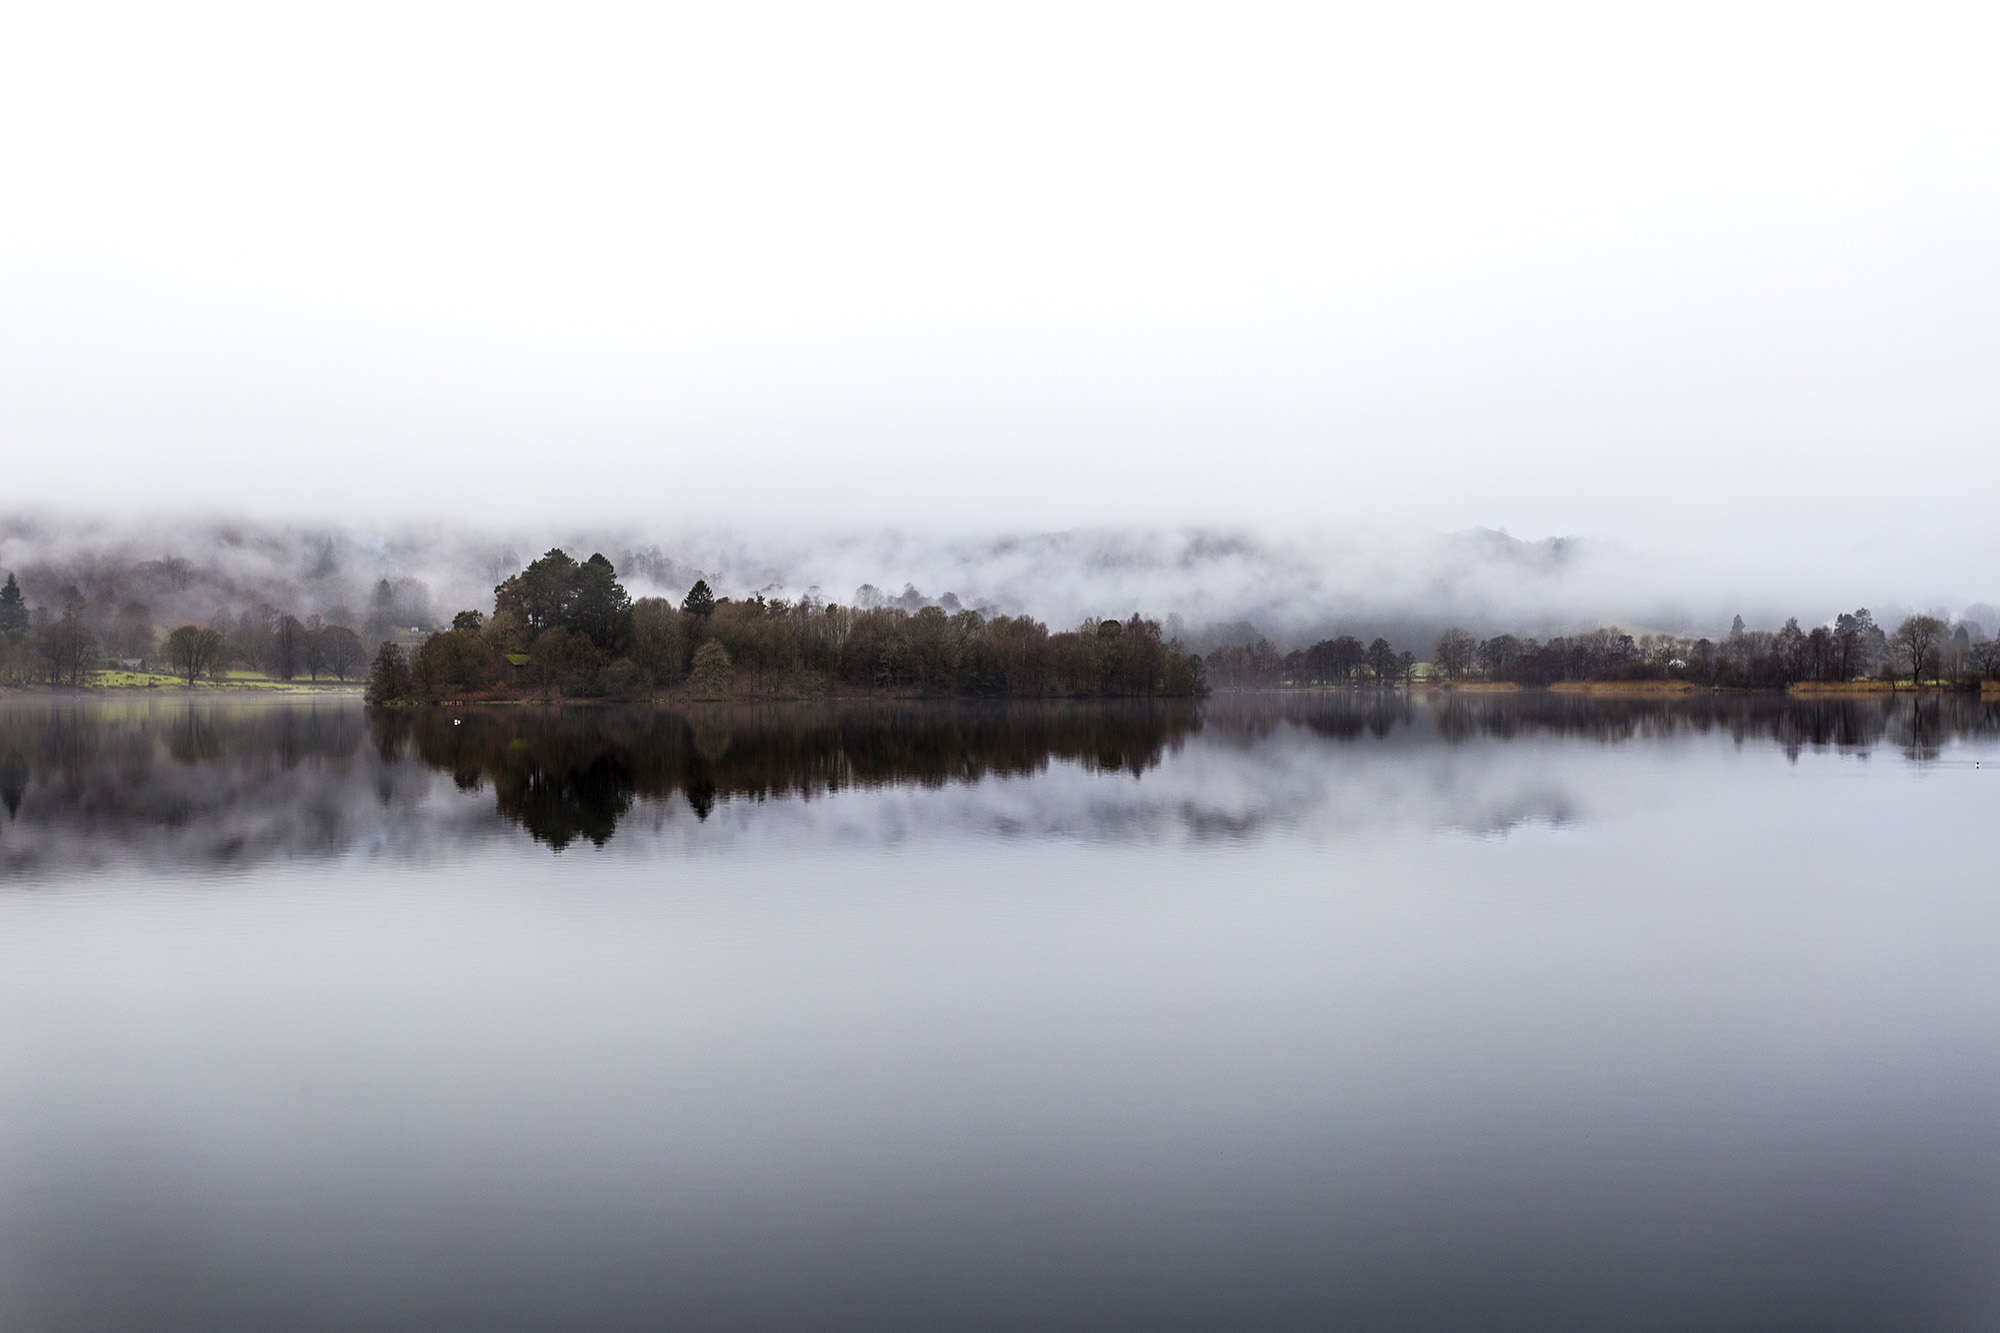 Lake District Photographs | Amazing landscapes from the home of Wordsworth